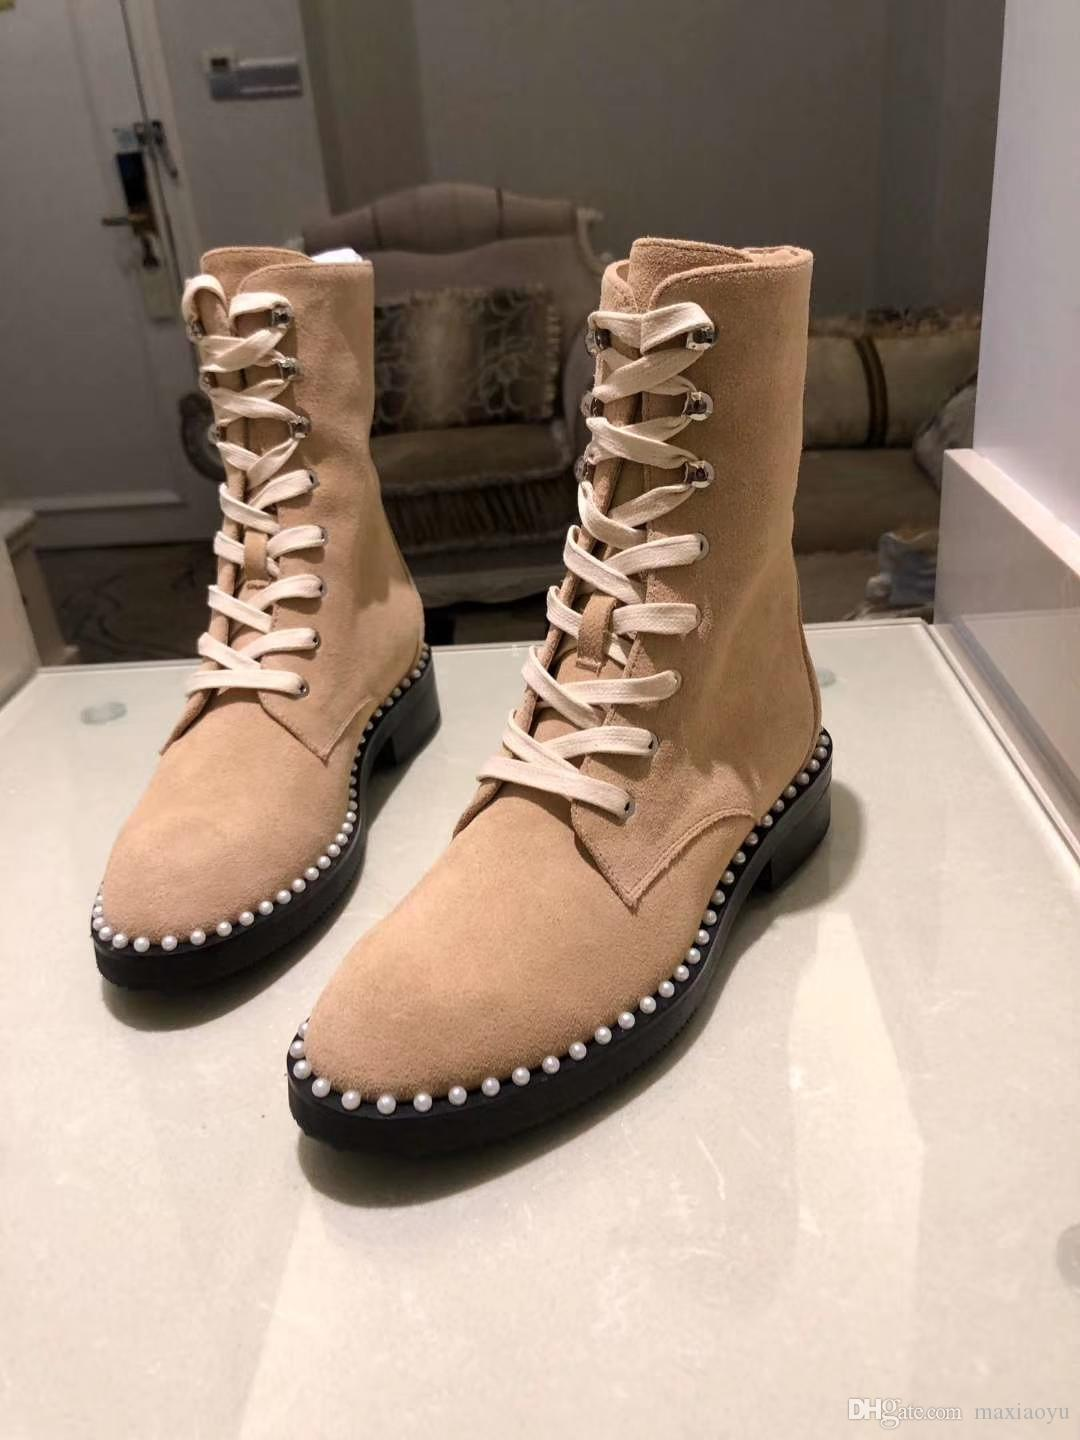 2019 spring fall womens nude beige sex suede real leather Motorcycle biker Military Luxury Fashion Charm Pearly trim lace up Combat boots